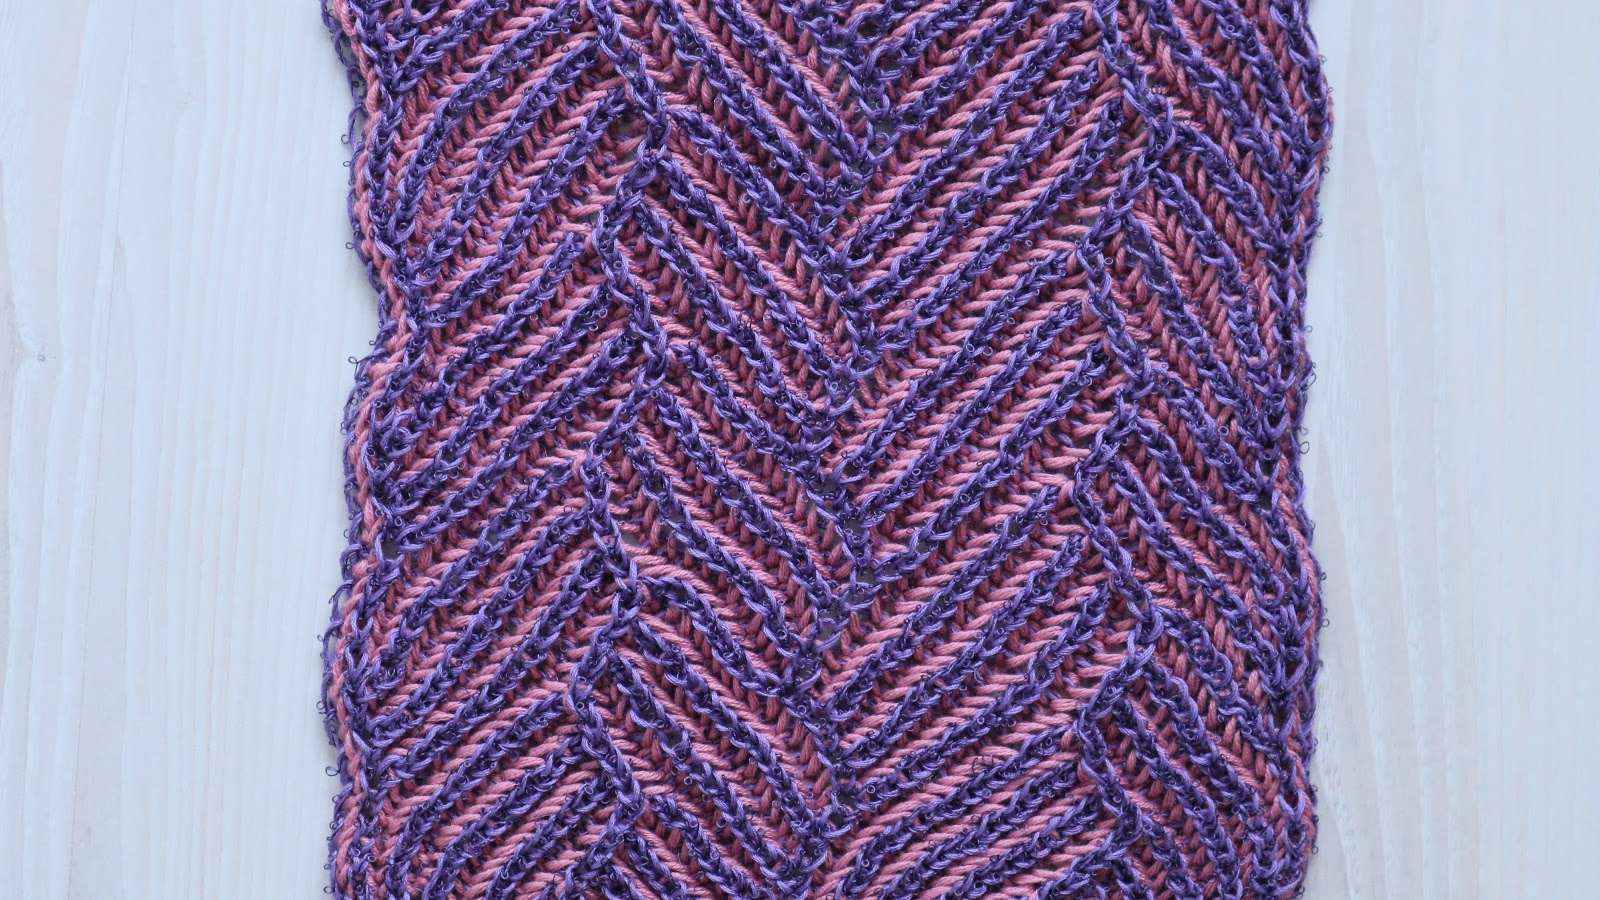 Pathways Scarf - Brioche Knitting